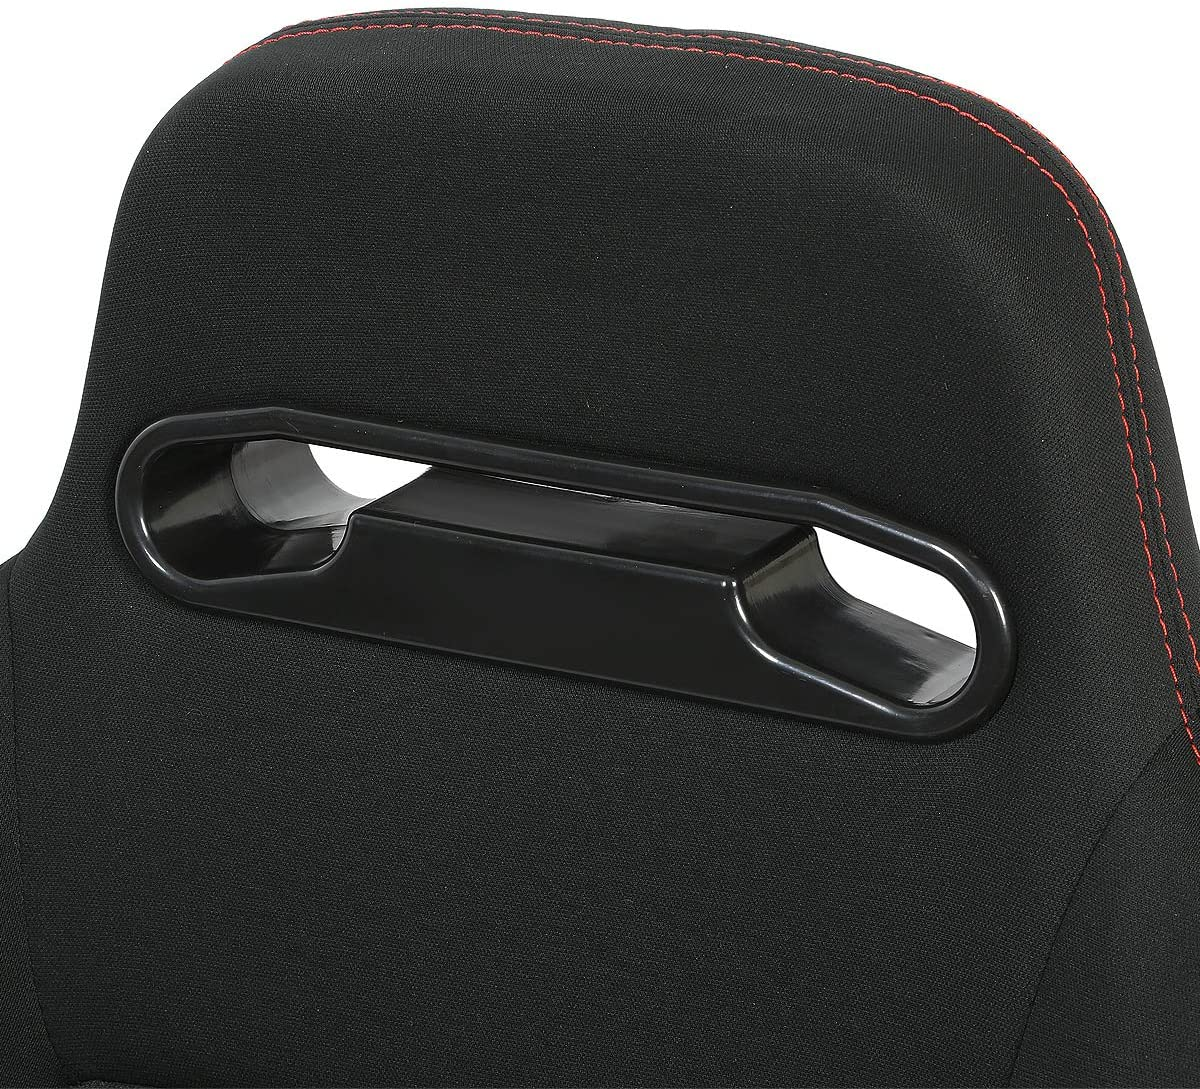 Left//Driver Side Only DNA RS-TR-BK-L-NEW Type-R Black Cloth with Red Stitch Racing Seat